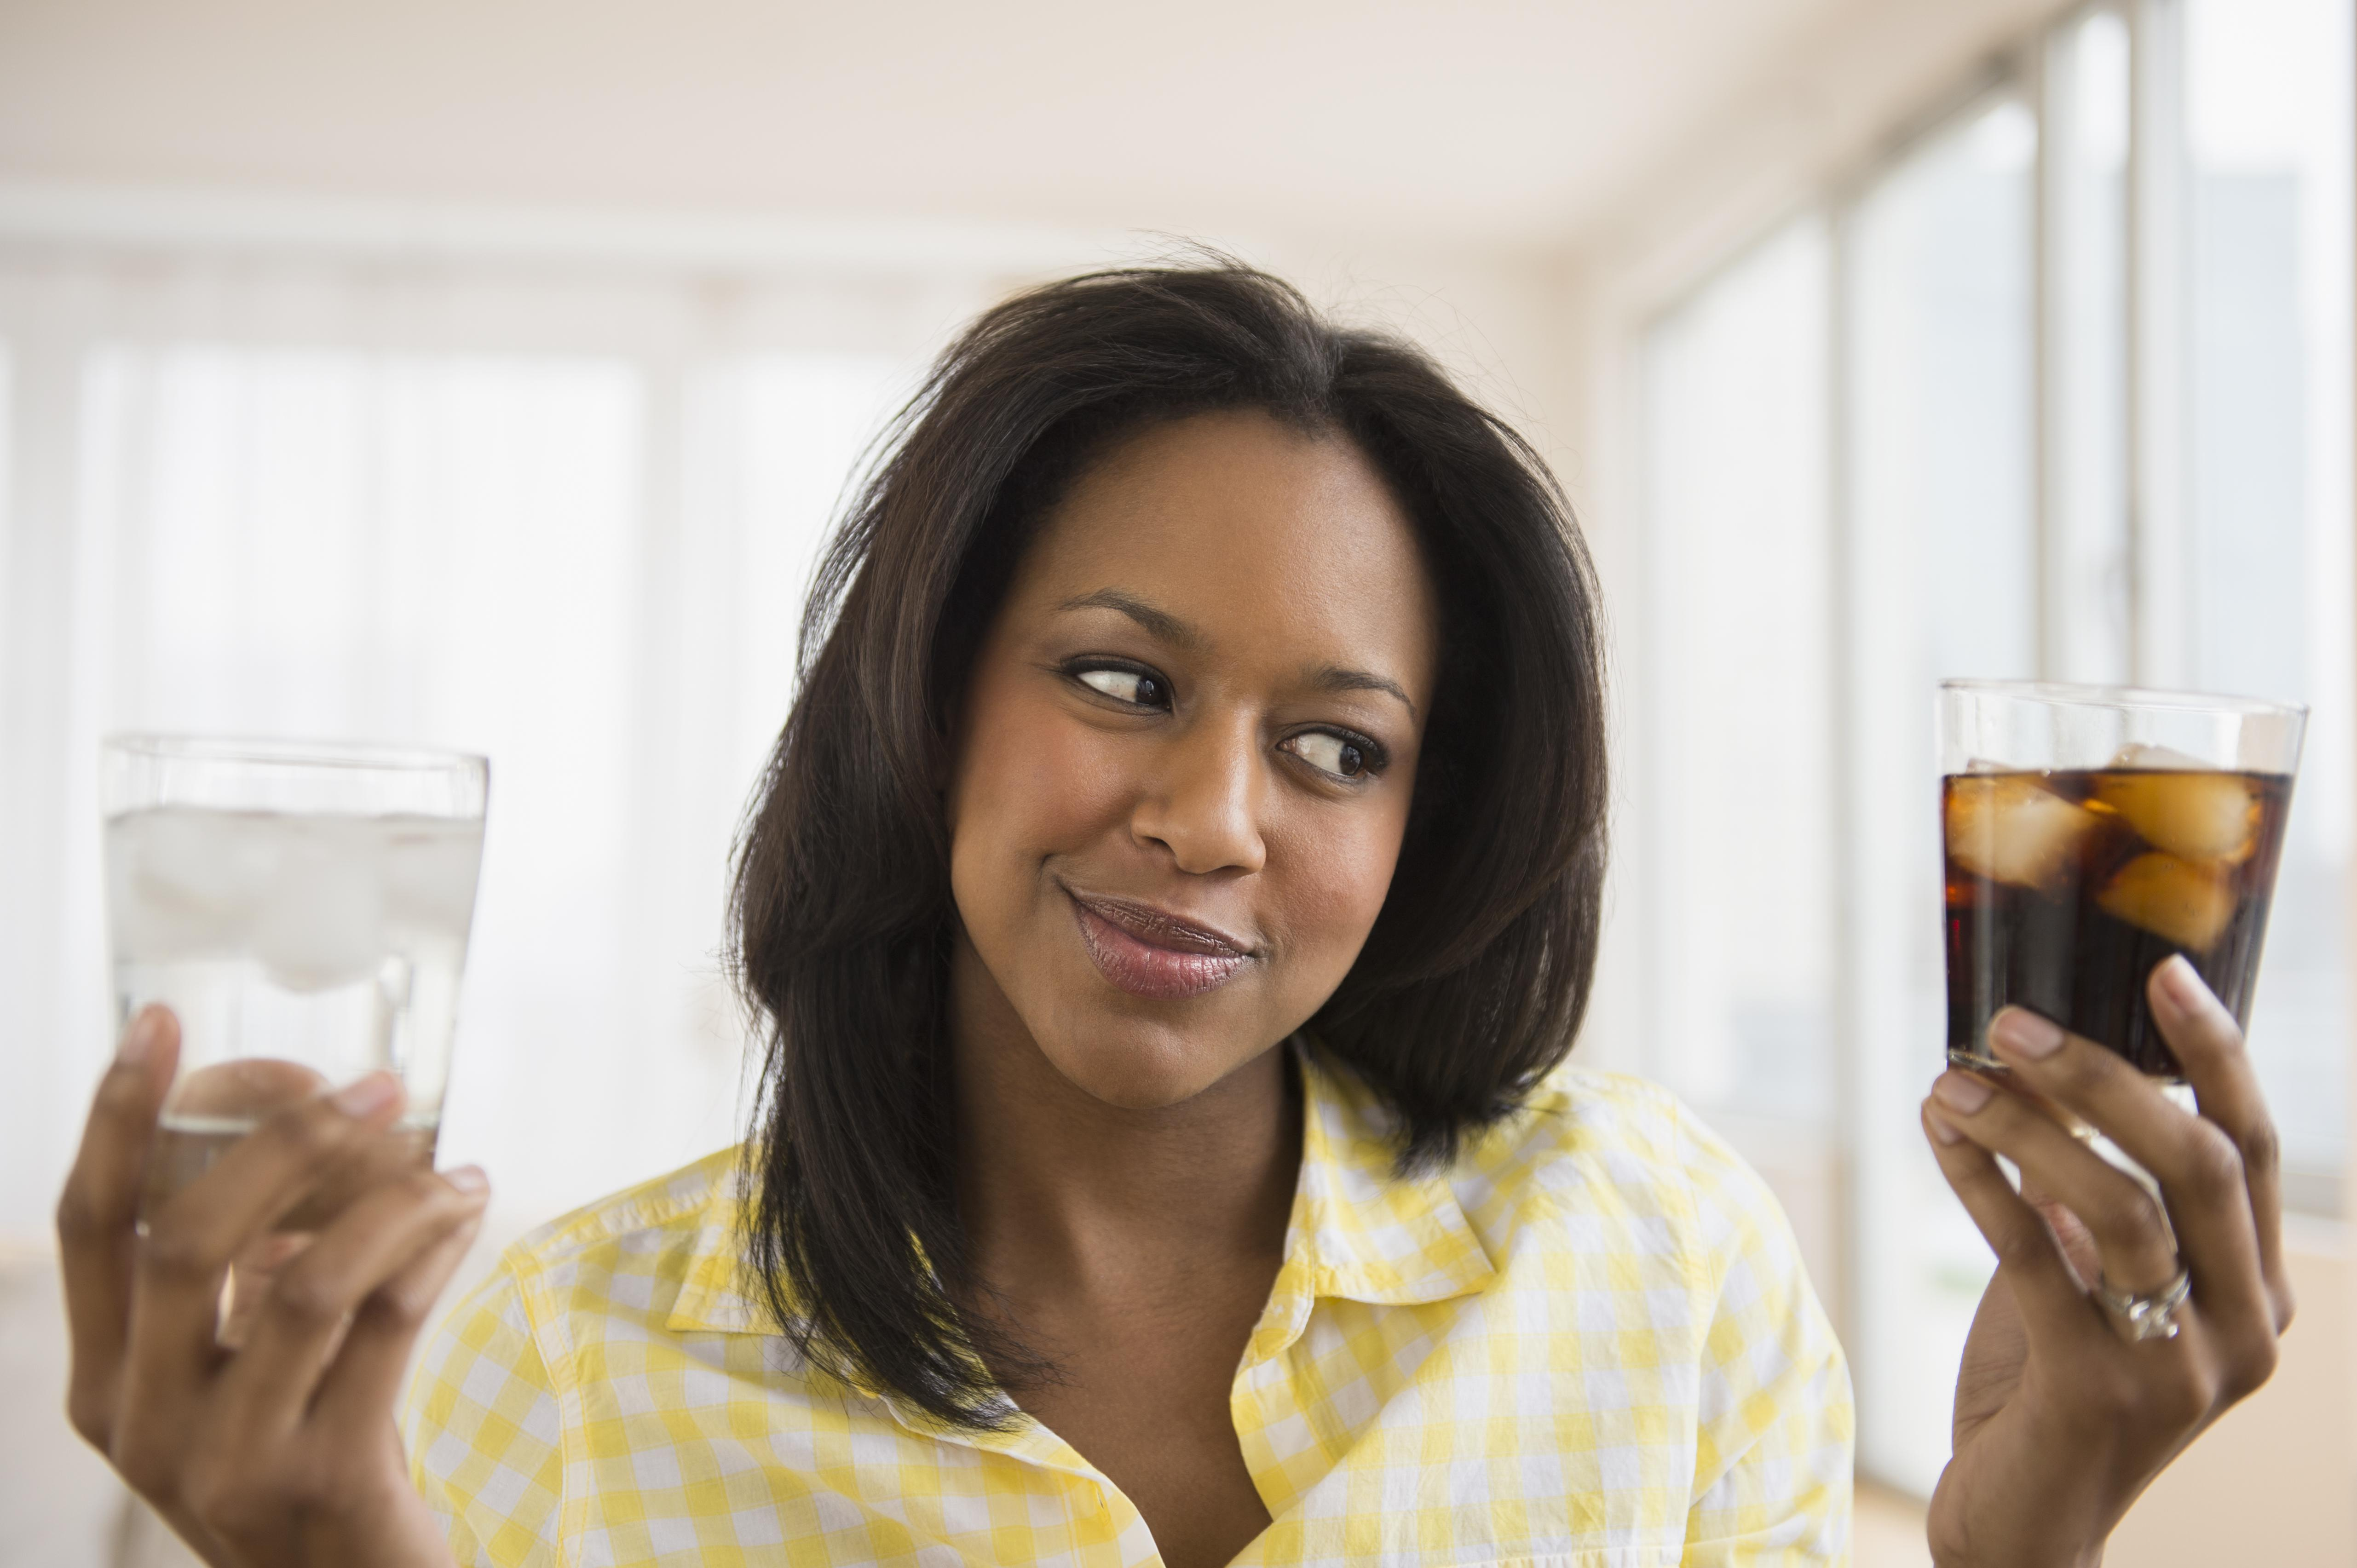 African American woman choosing water or soda